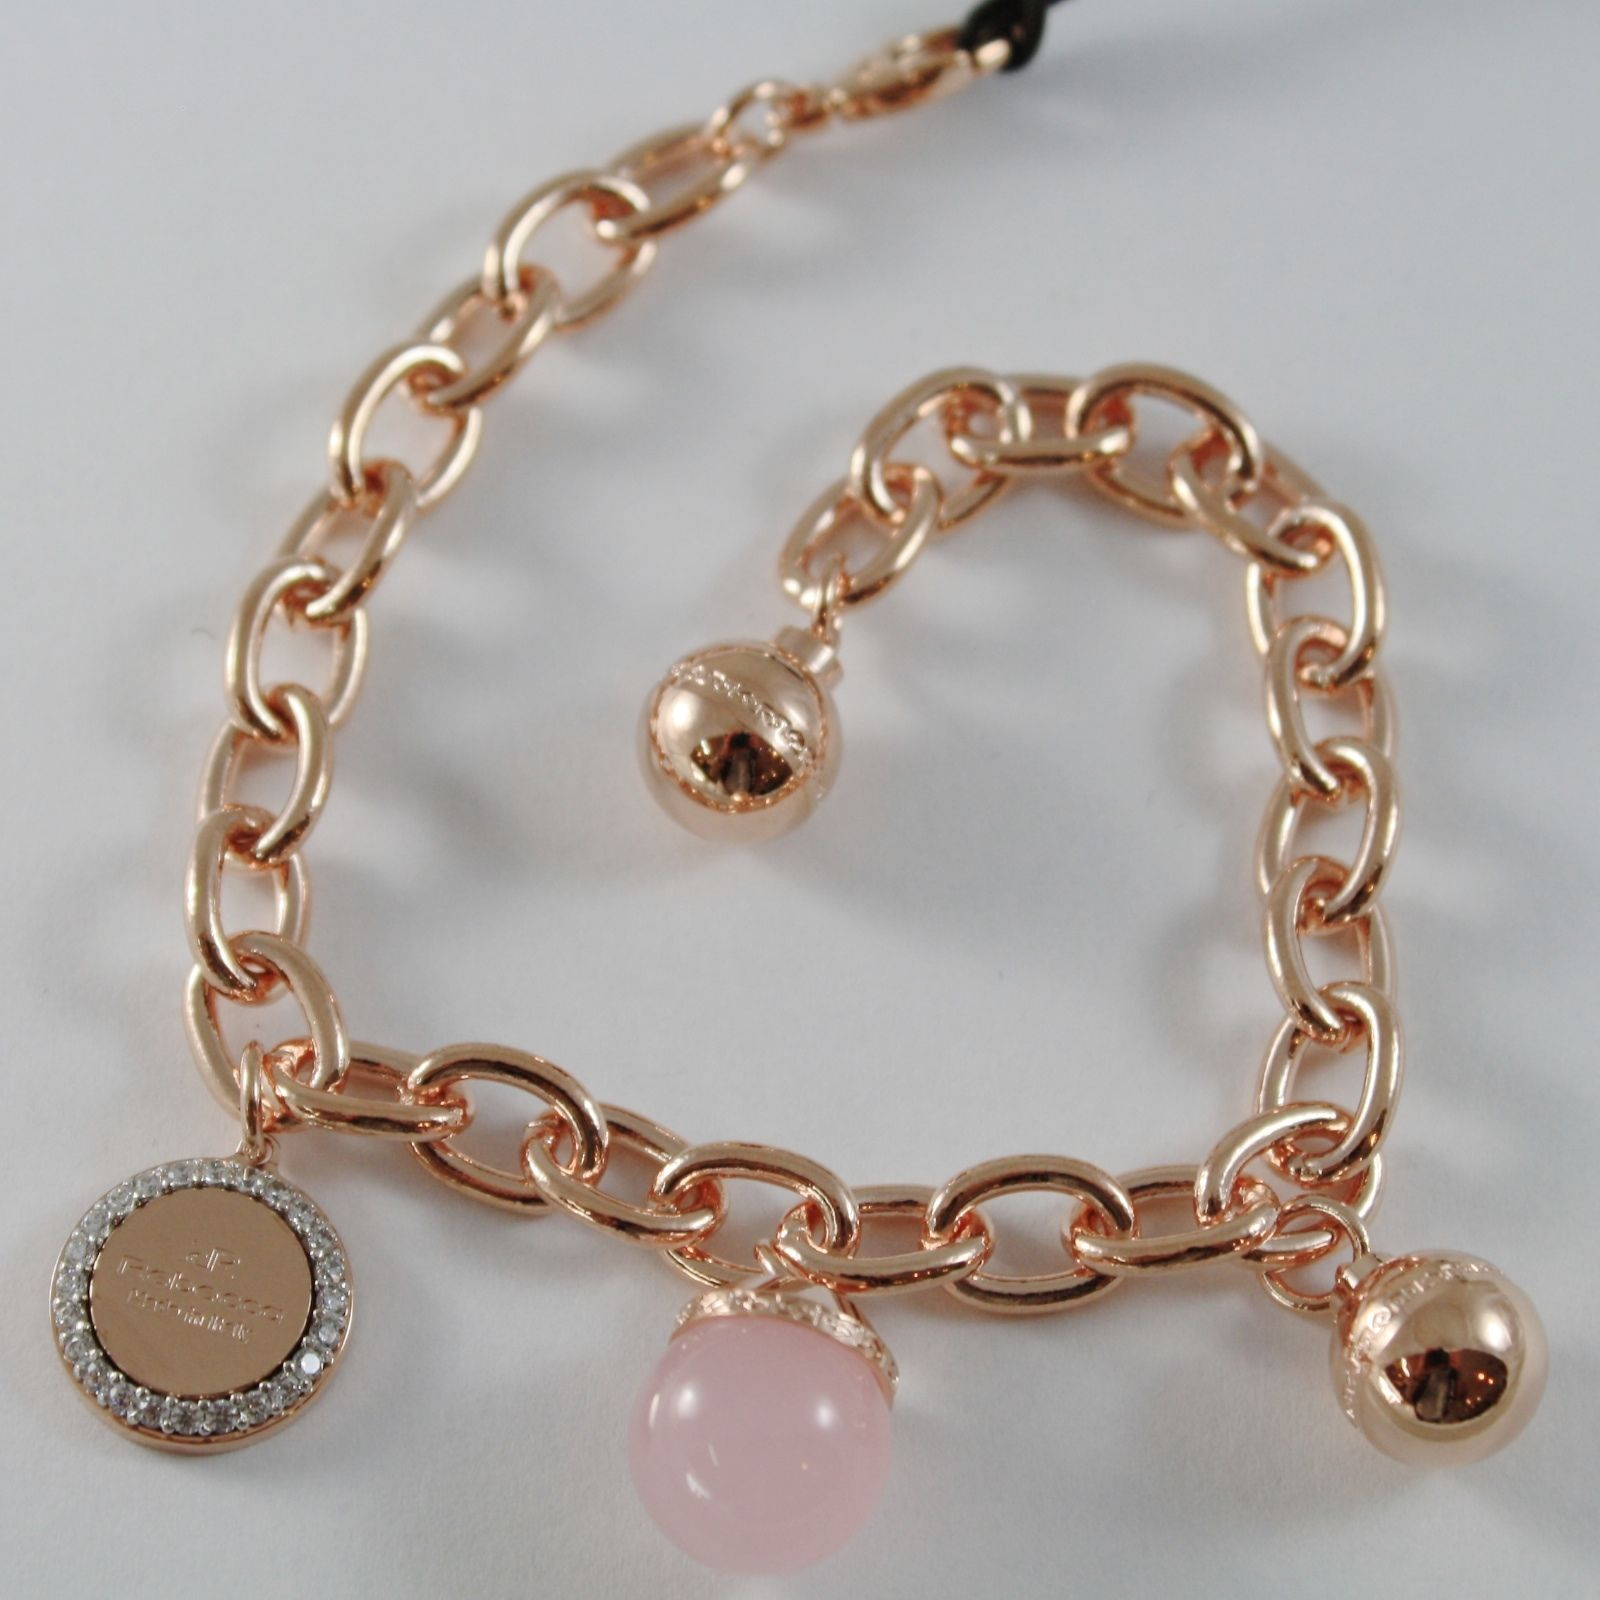 ROSE GOLD PLATED BRONZE REBECCA OVAL BRACELET PINK STONE BHSBRQ04 MADE IN ITALY